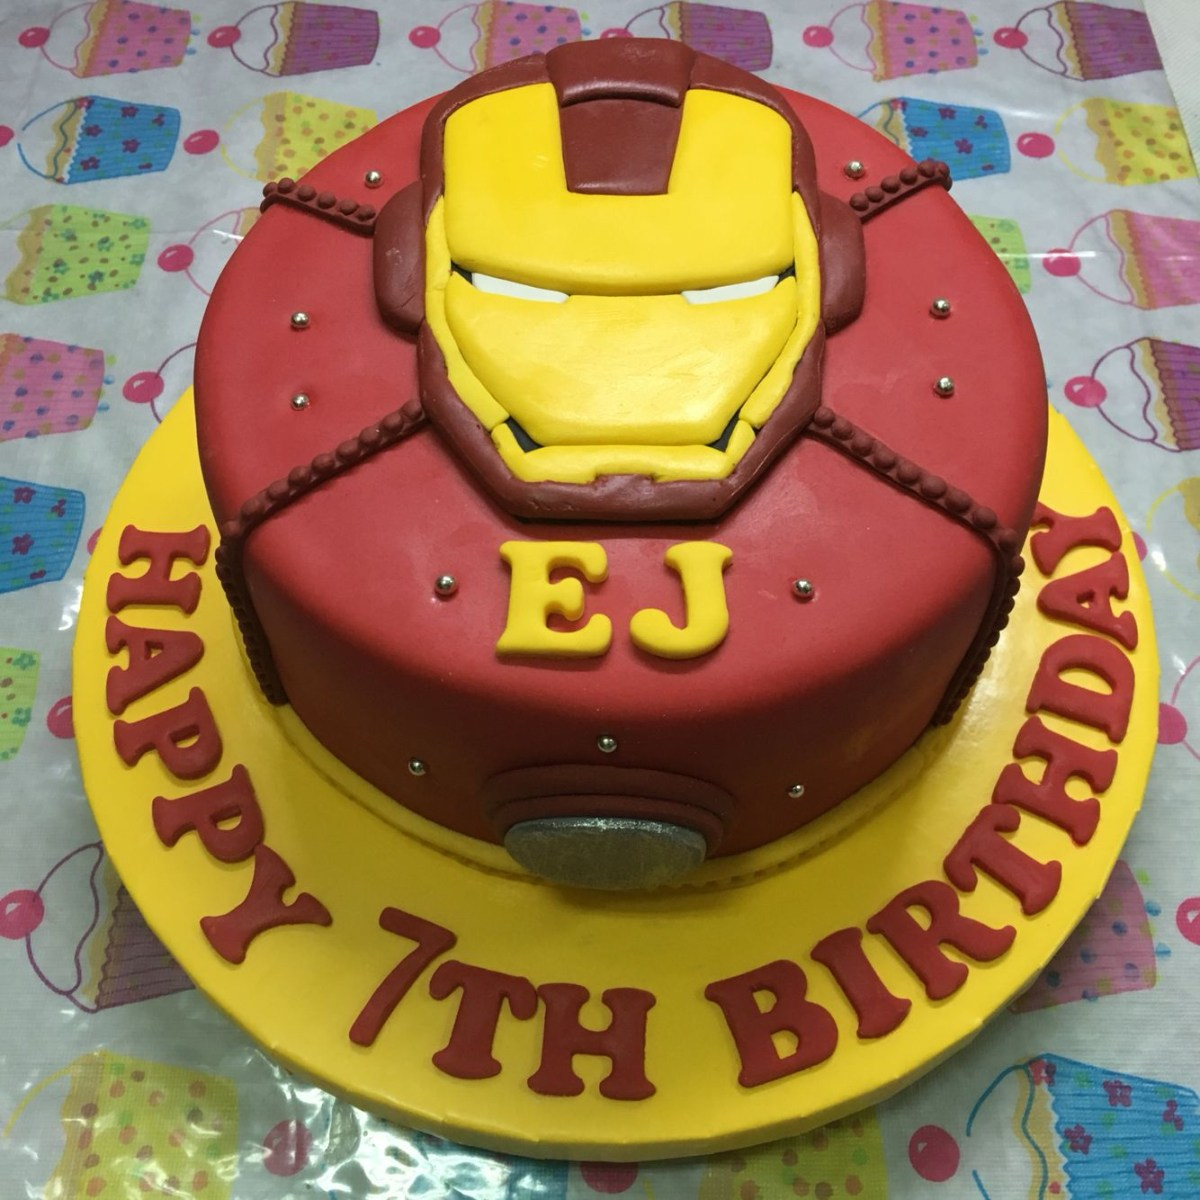 Awe Inspiring Iron Man Birthday Cake Our Very Own Ironman Cake For Ejs 7Th Bday Personalised Birthday Cards Epsylily Jamesorg